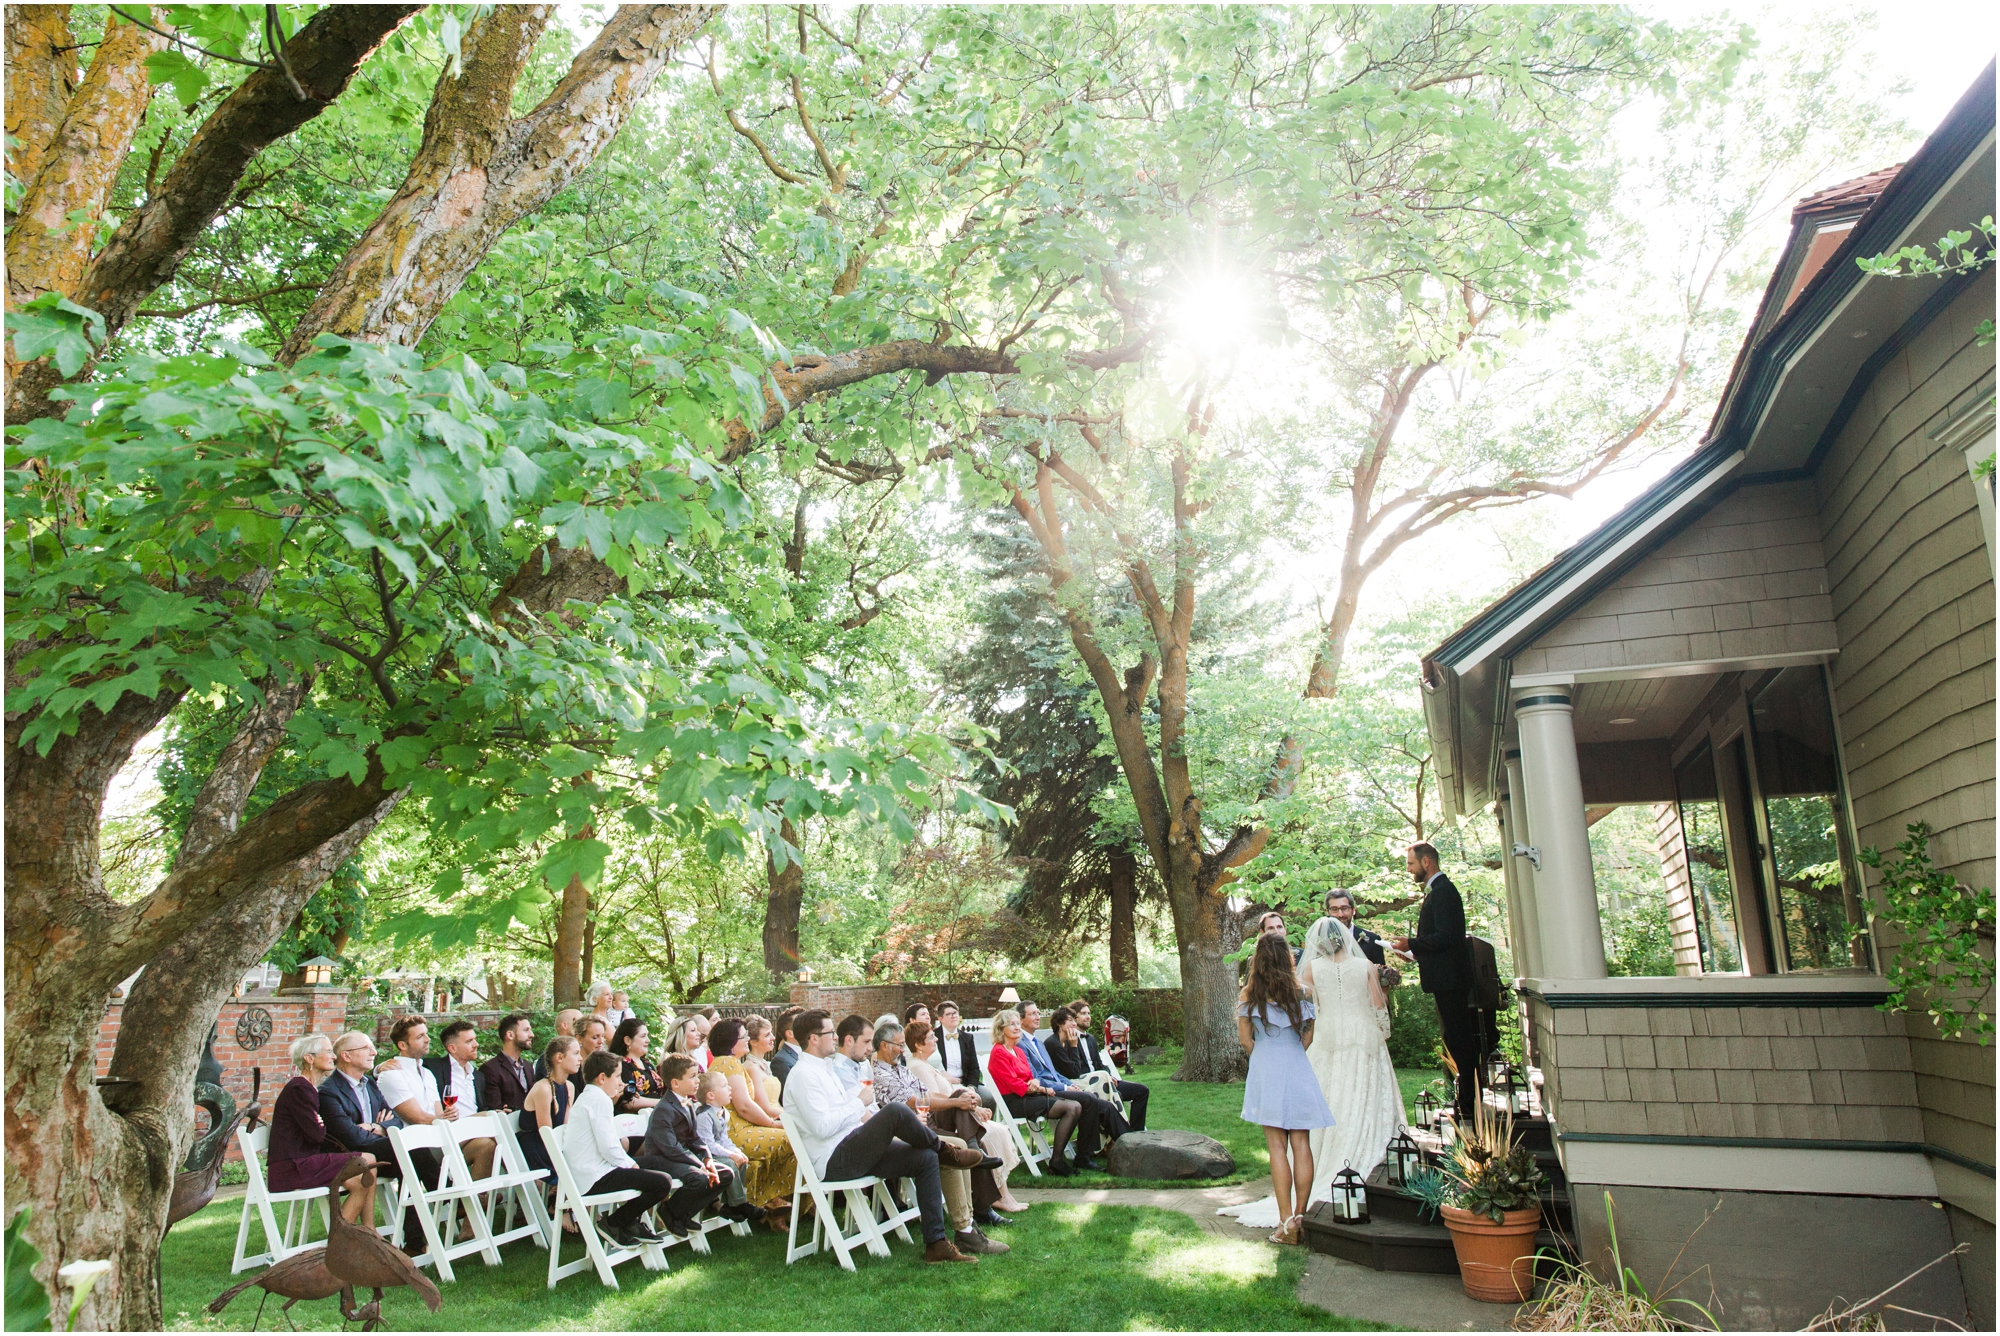 Garden wedding in Ellensburg, WA. Photos by Briana Calderon Photography based in the greater Seattle-Tacoma Area._1343.jpg